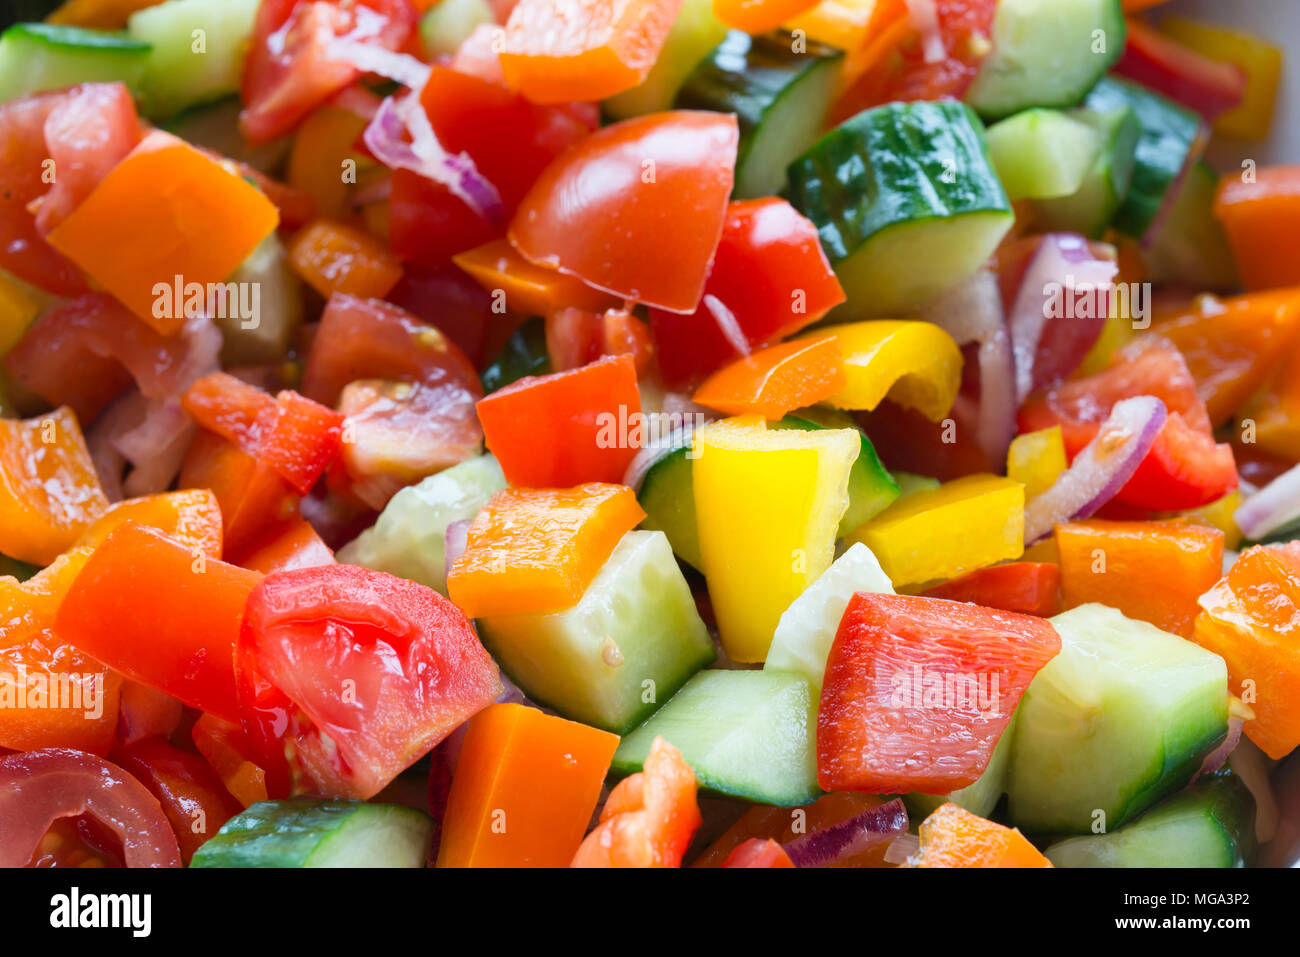 calories low calorie photos & calories low calorie images - alamy